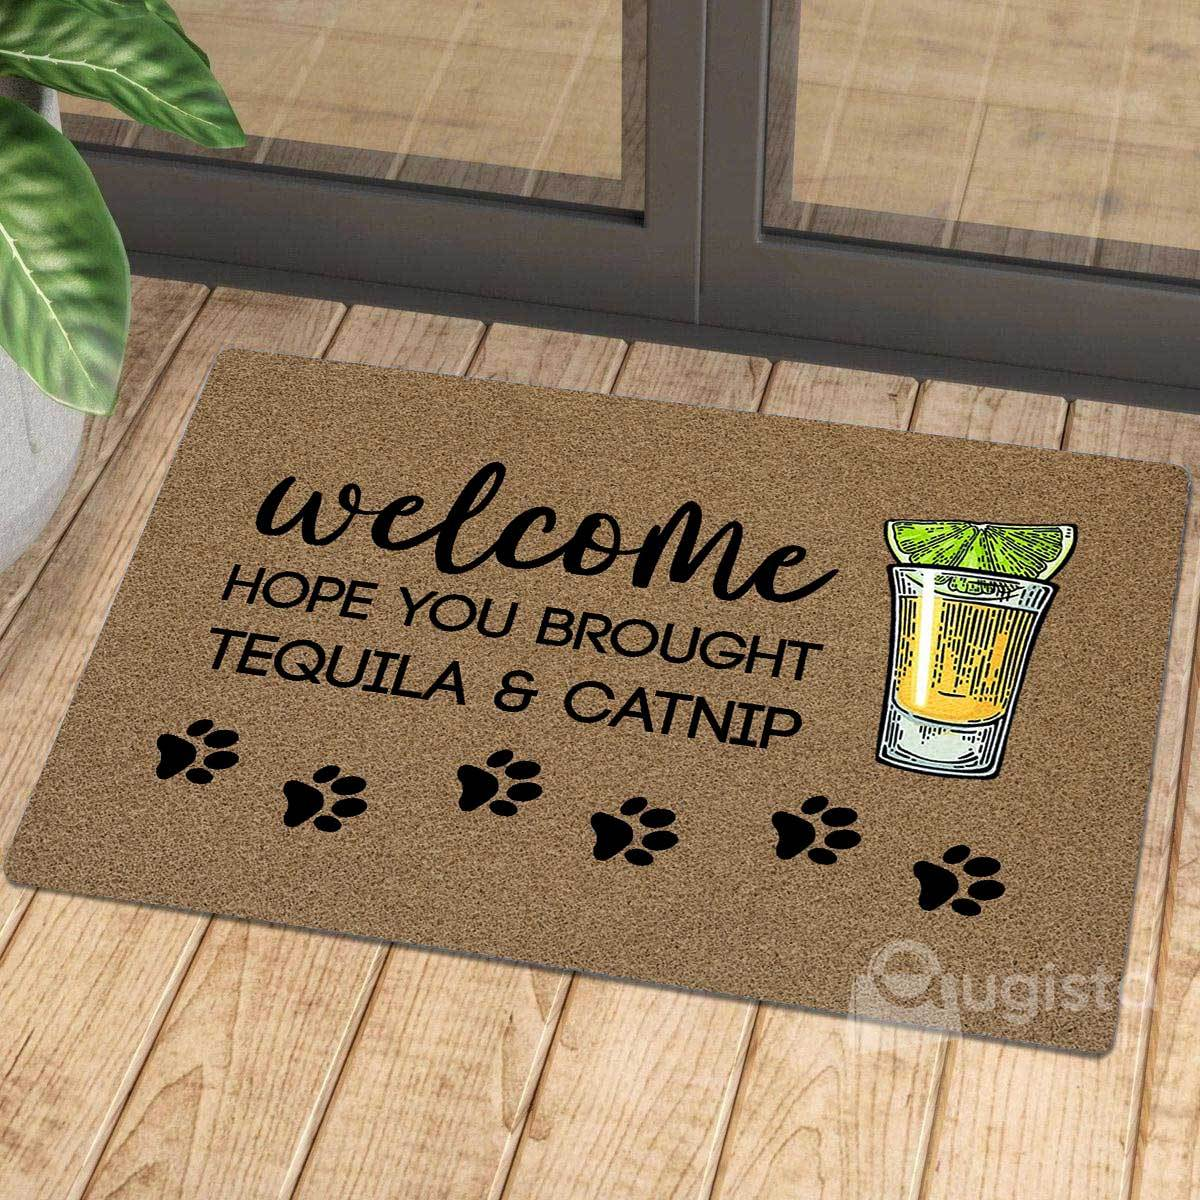 vintage welcome hope you brought tequila and catnip doormat 1